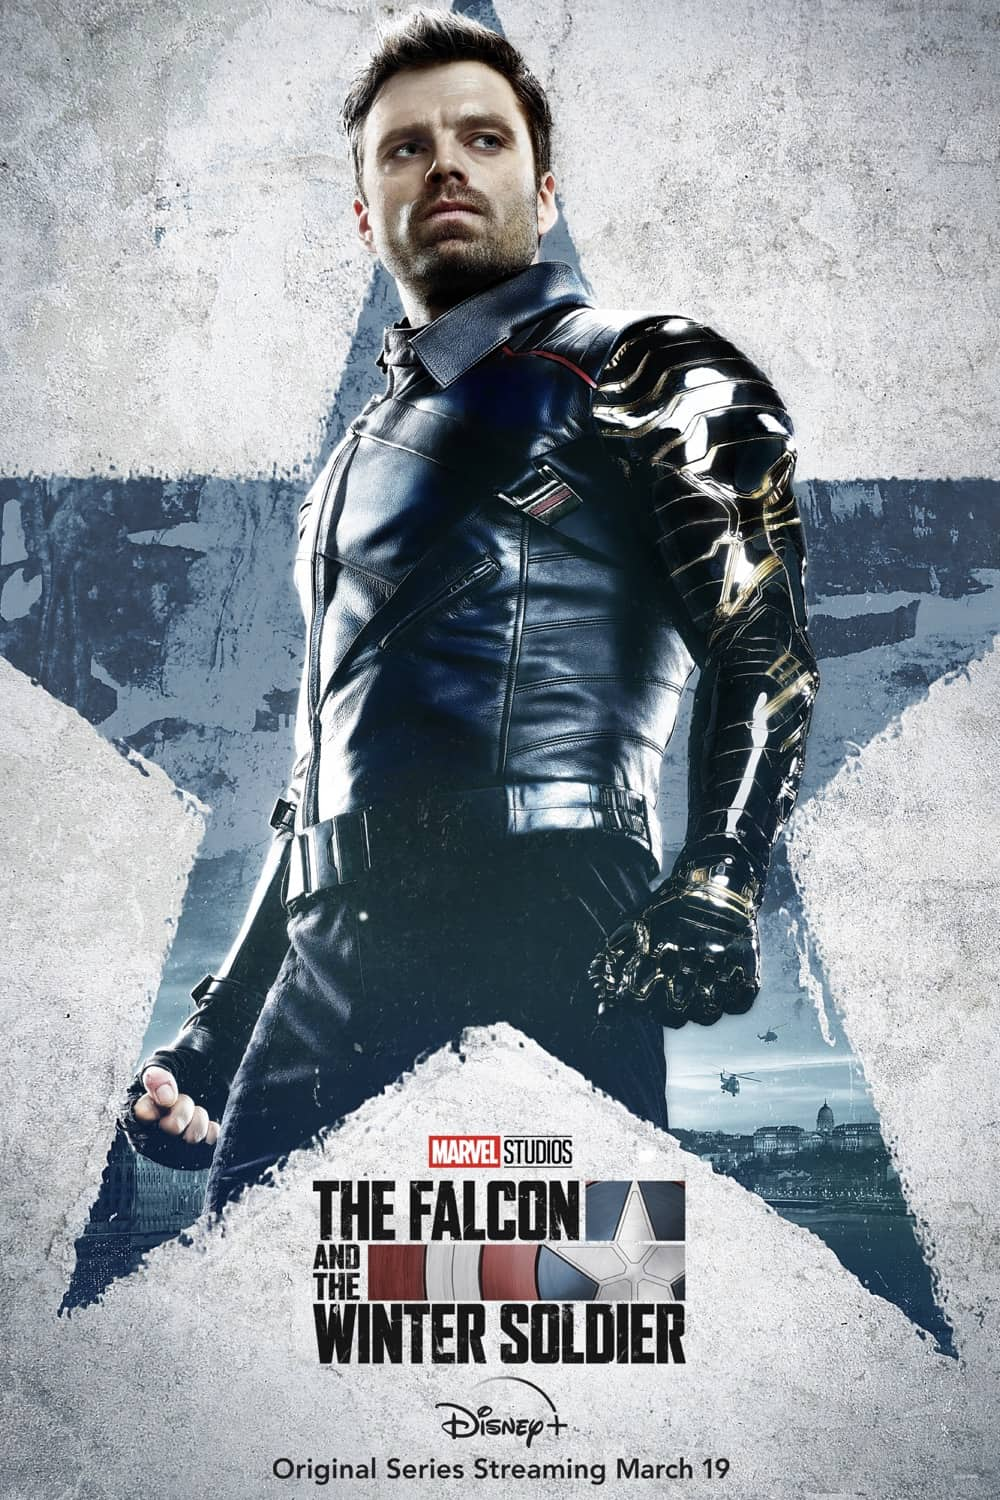 Sebastian Stan as Bucky Barnes/The Winter Soldier The Falcon And The Winter Soldier Character Poster